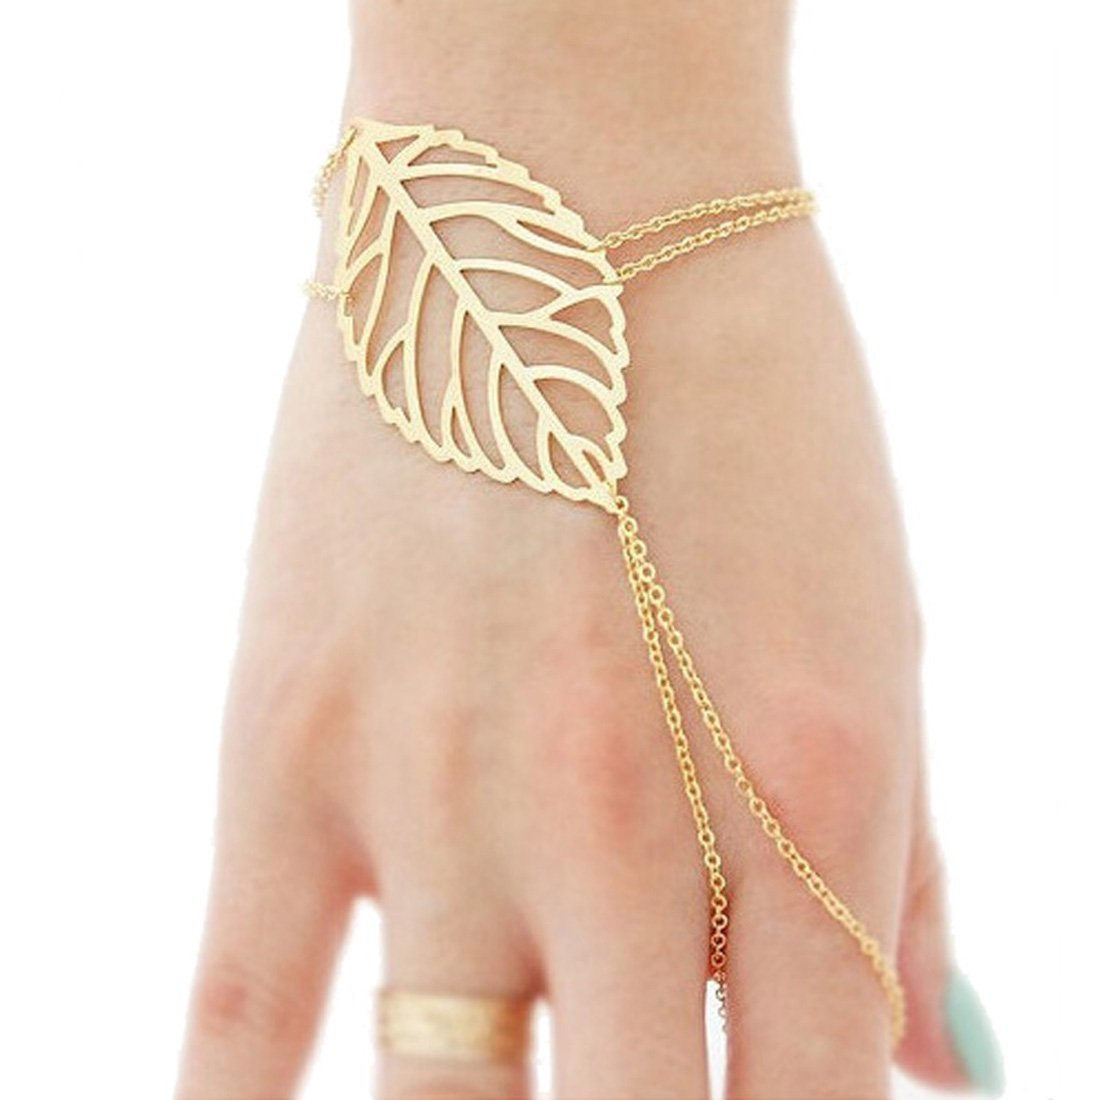 hollow bracelet chain fantasy bangle jewelry motif gold products online hand